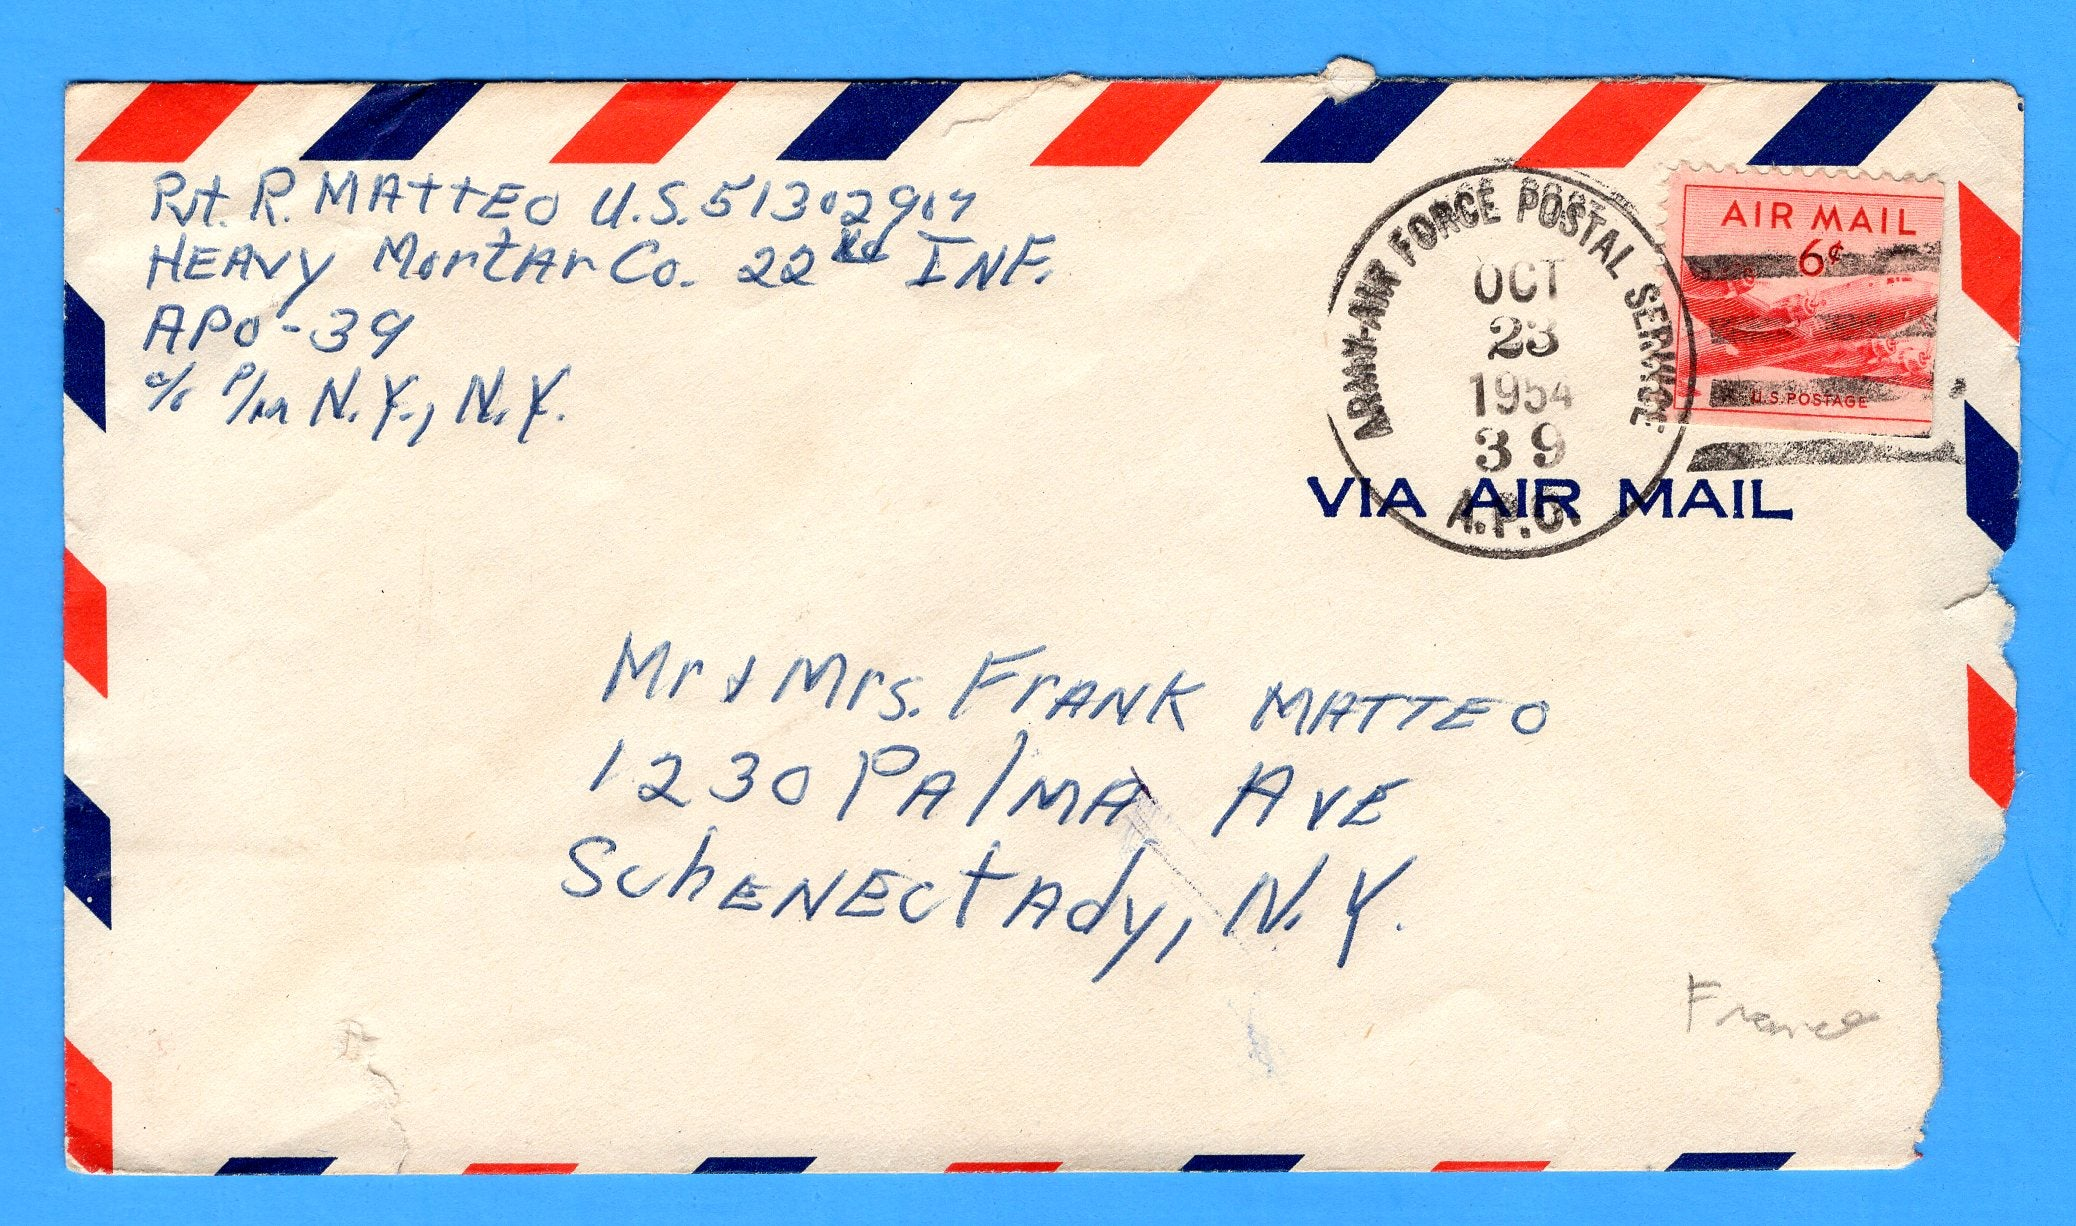 Army-Air Force Mail Heavy Mortar Company, 22nd Infantry APO 39 October 23, 1954